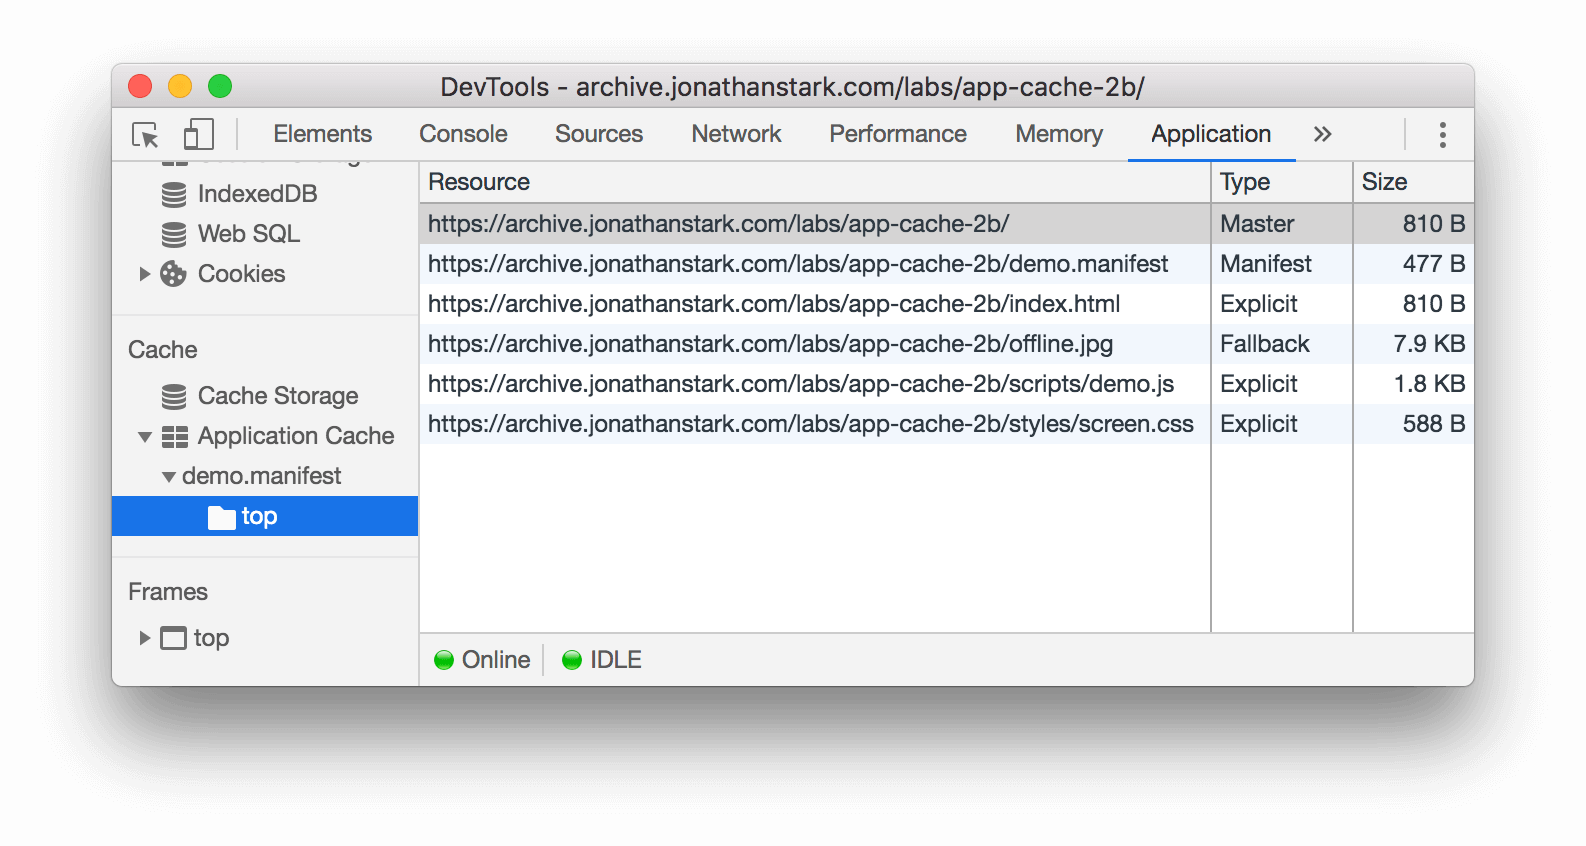 The Application Cache pane